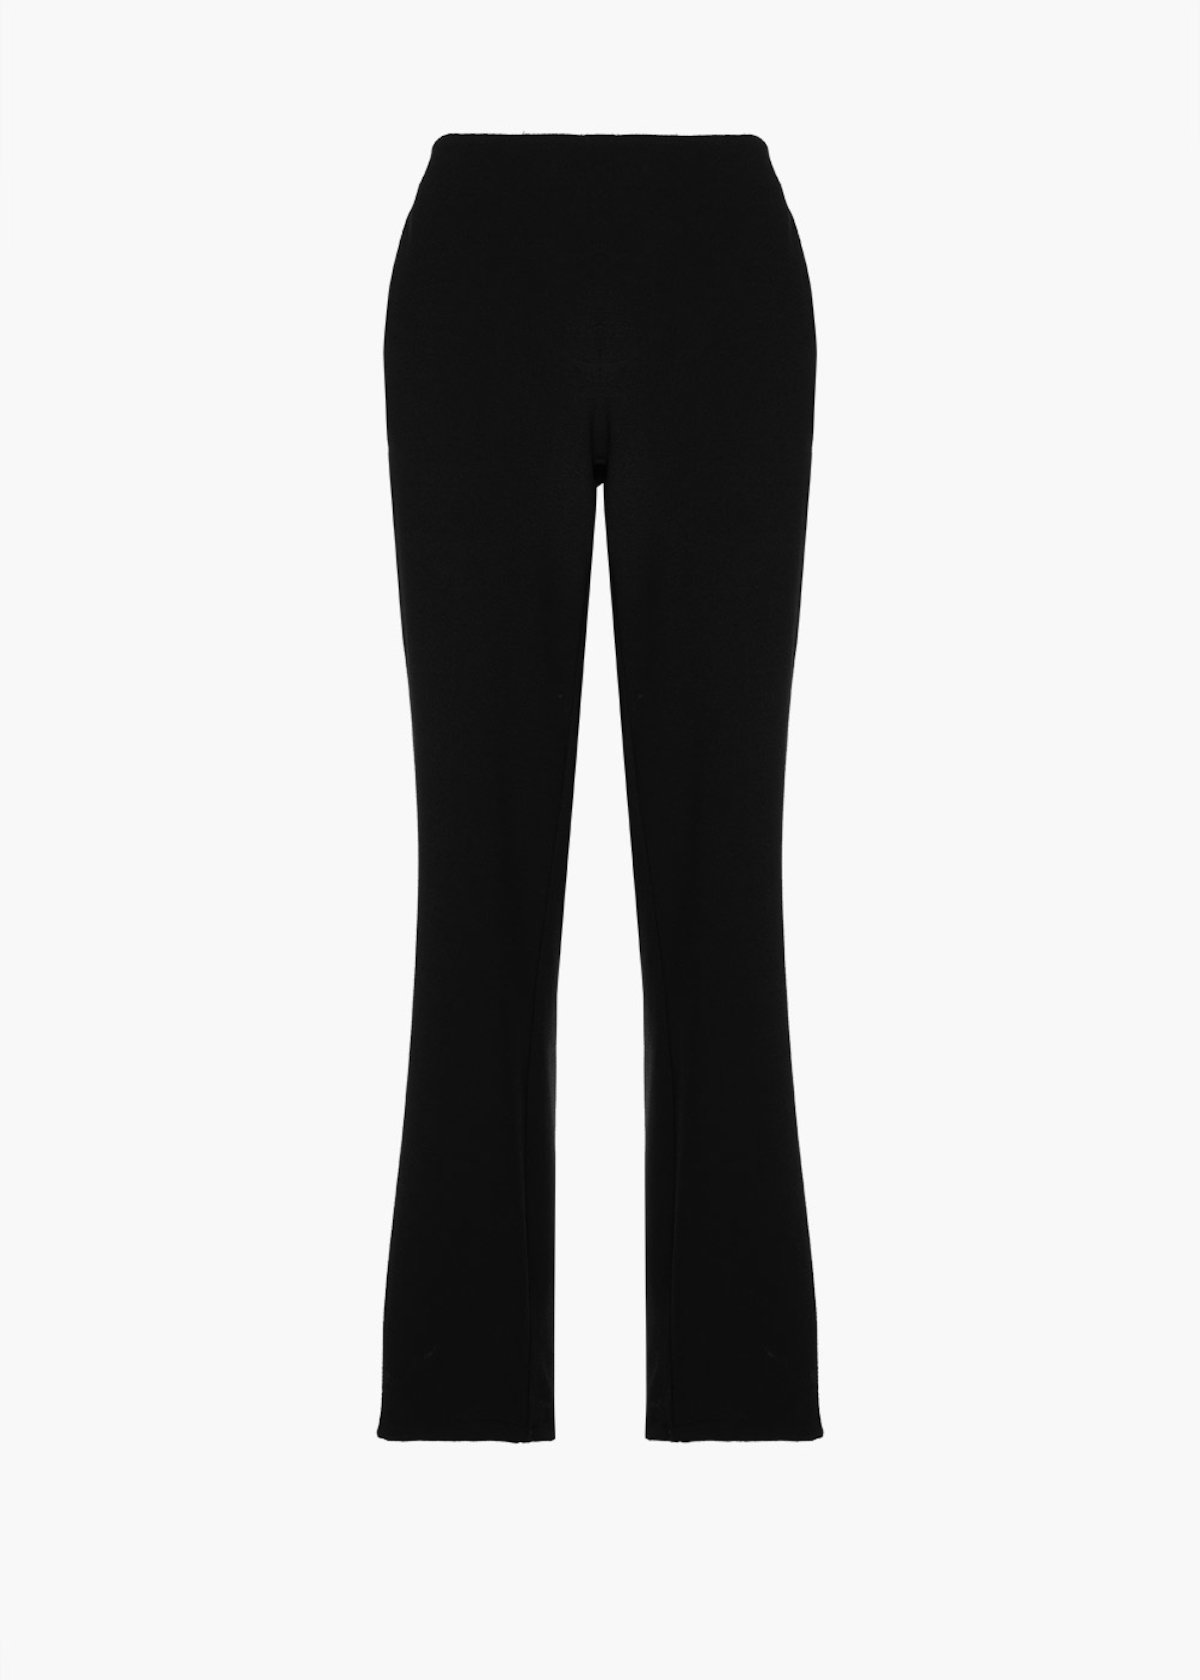 Pants Pedros with wide fit - Black - Woman